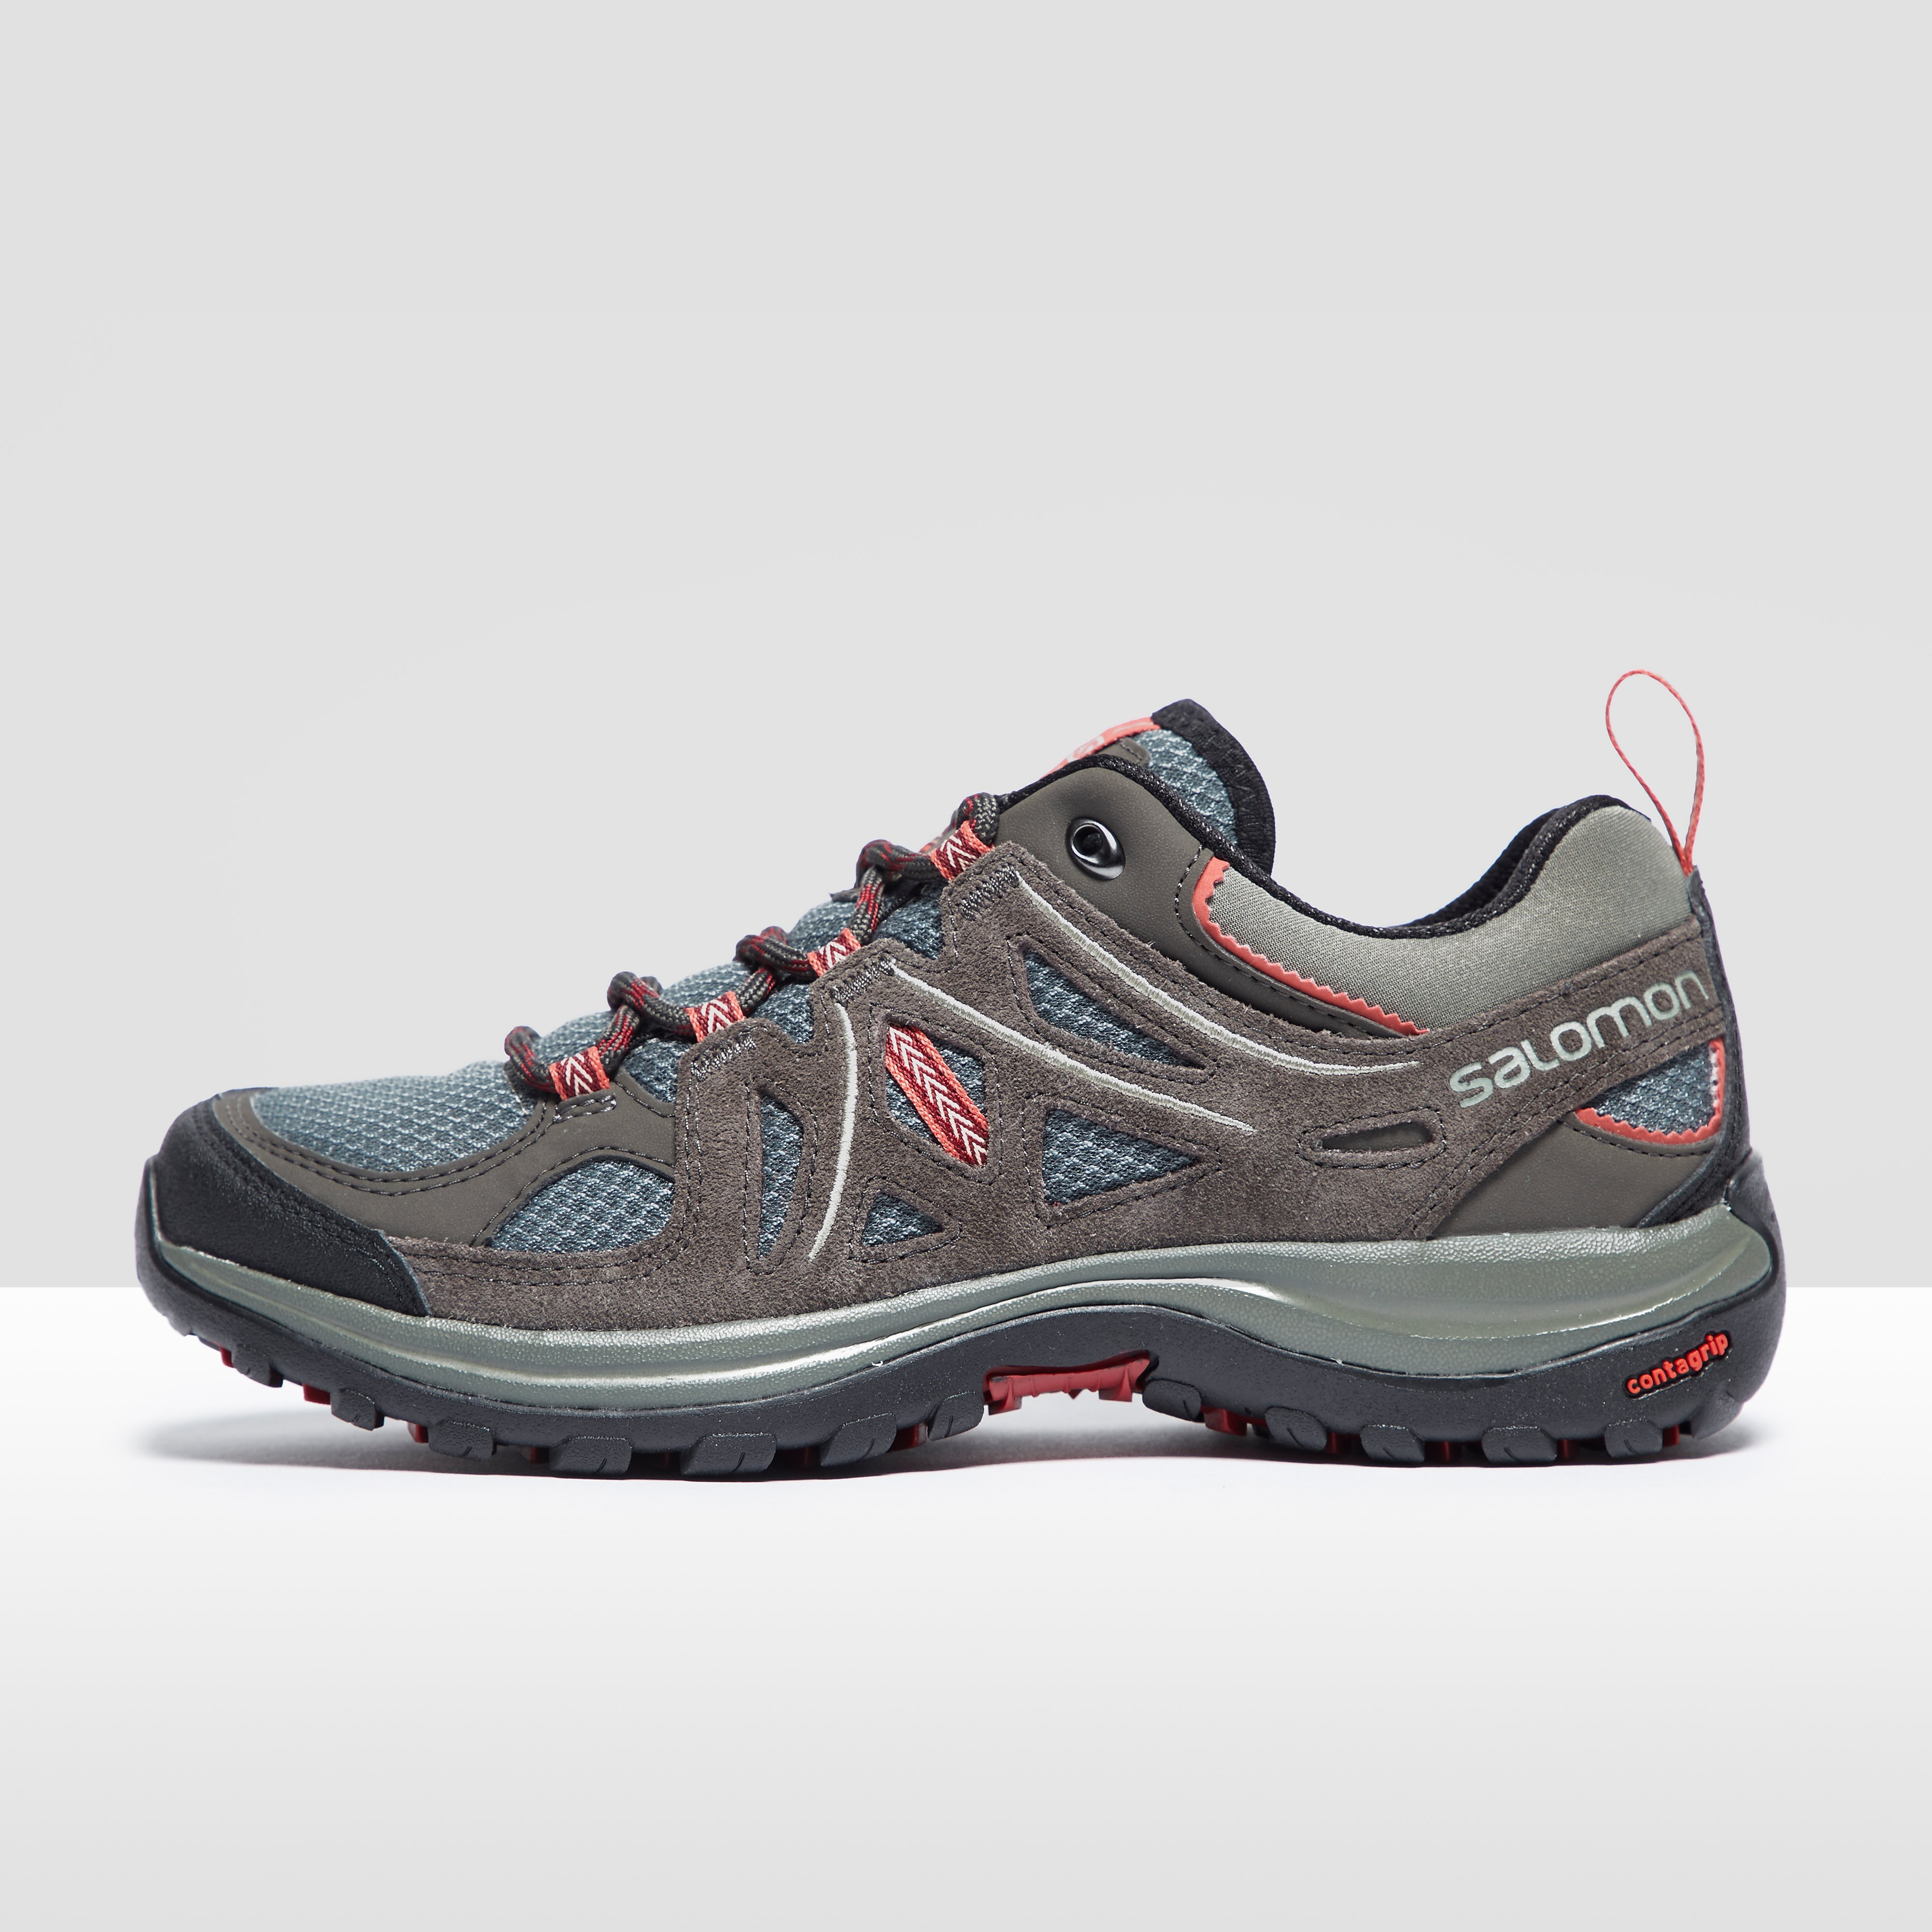 Salomon Ellipse 2 Aero Women's Hiking Shoes